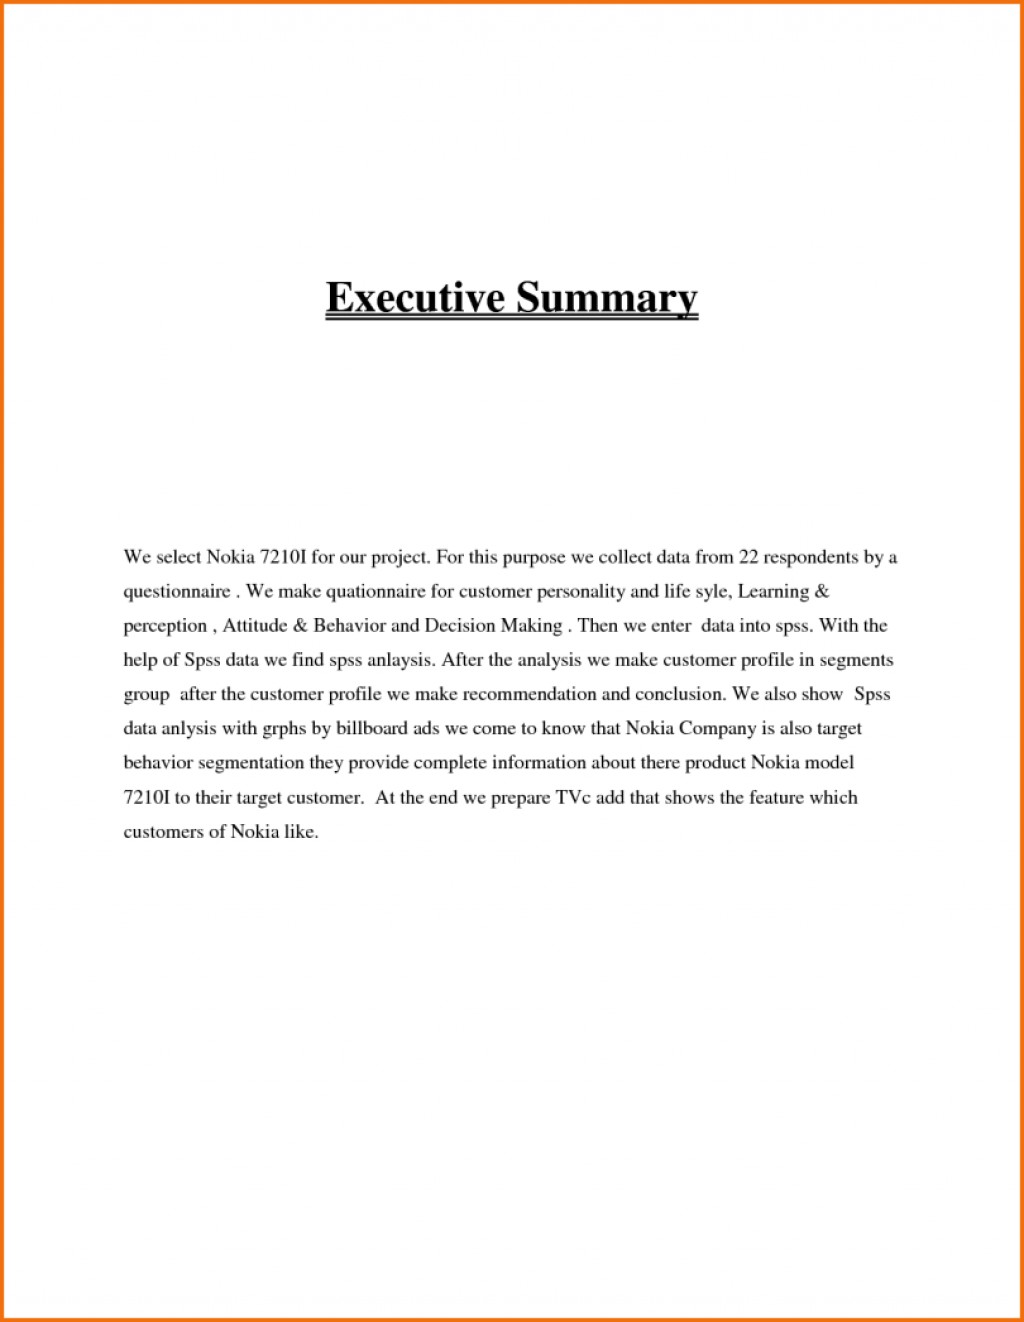 008 Example Executive Summary Format Resize8101046 Examples Of Research Exceptional Paper Findings In Sample Writing Large